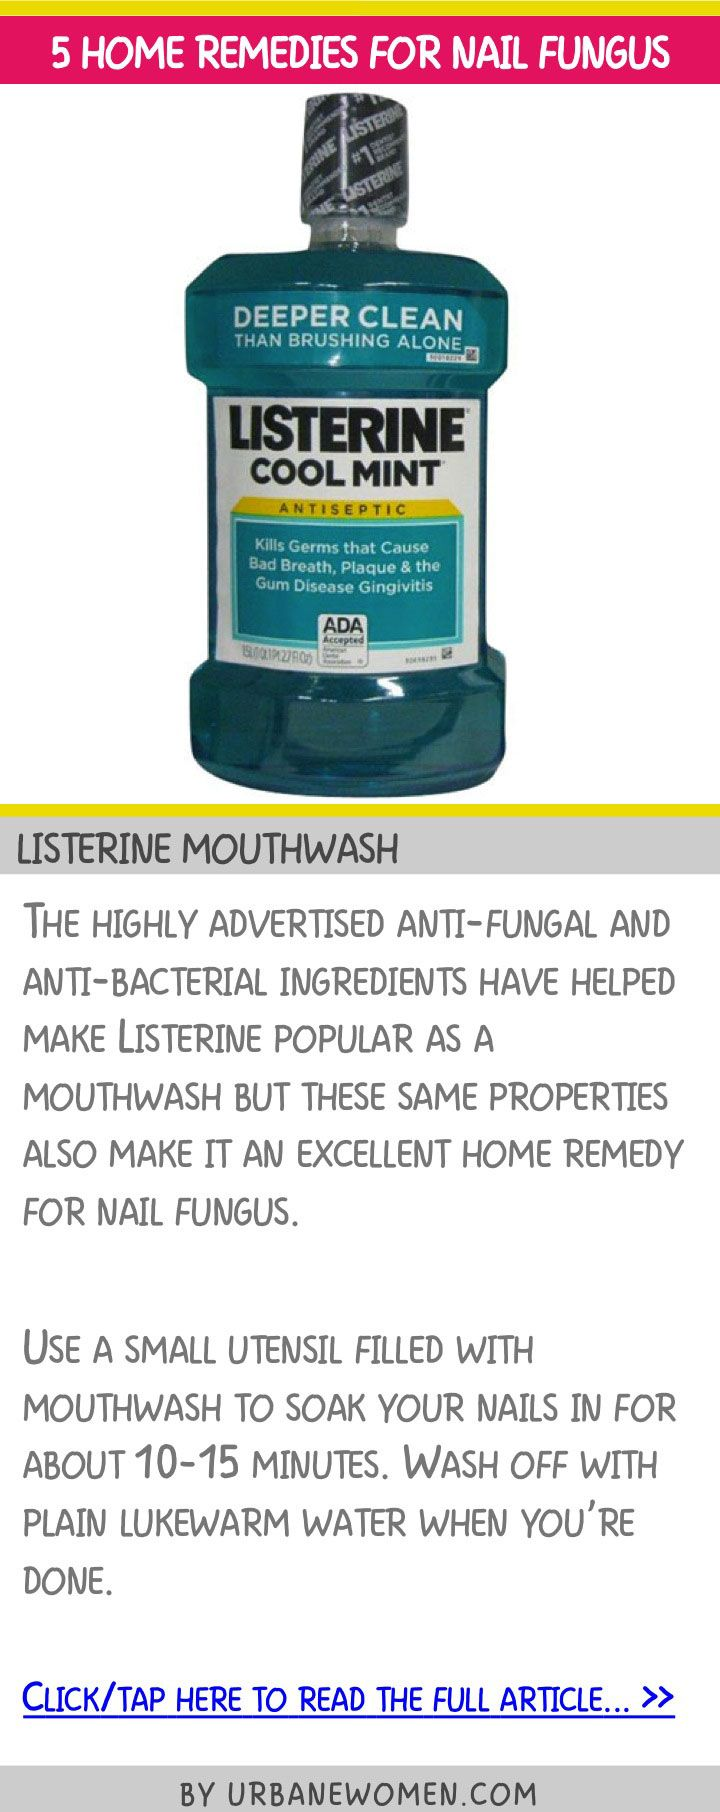 5 home remedies for nail fungus - Listerine mouthwash